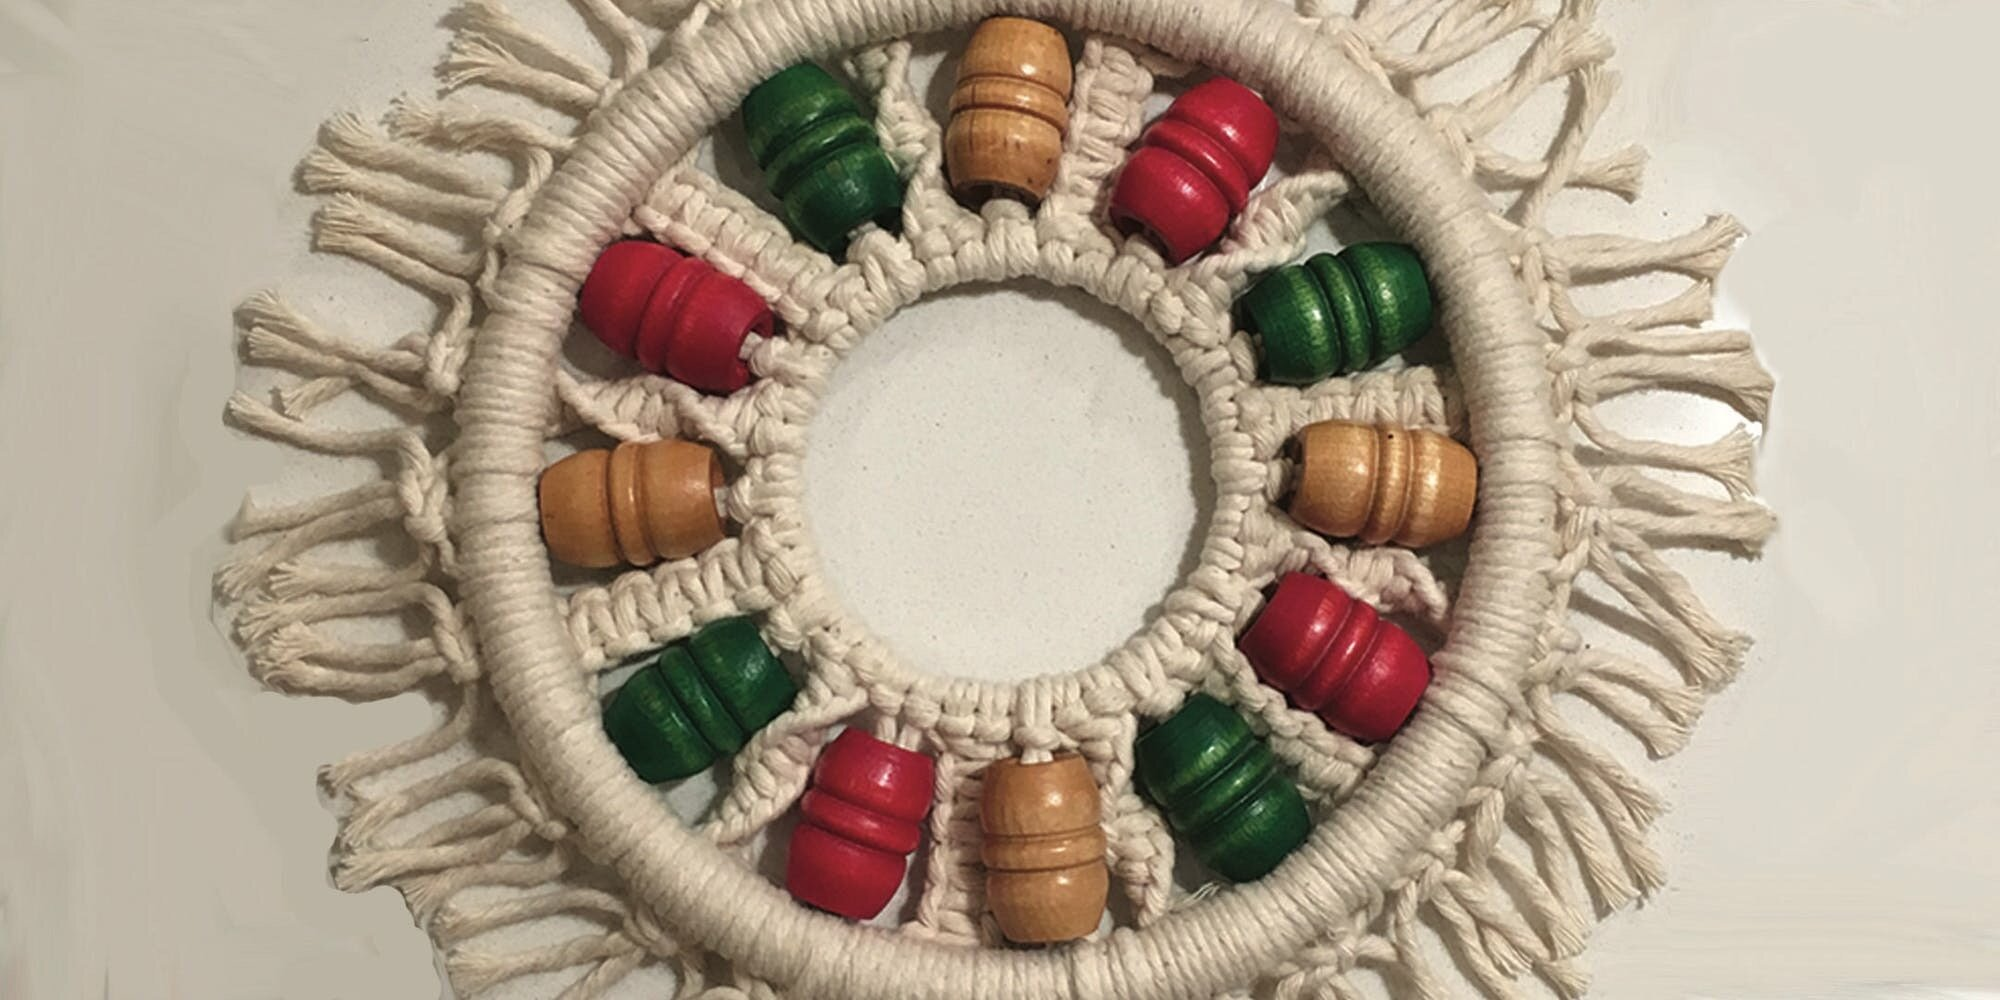 Tie into the holidays - Macrame a wreath to warm up your spirits and home for the holiday season! Knot and tie your own holiday keepsake. Enjoy your wreath for years to come - or pass it along as a meaningful holiday gift to a friend.